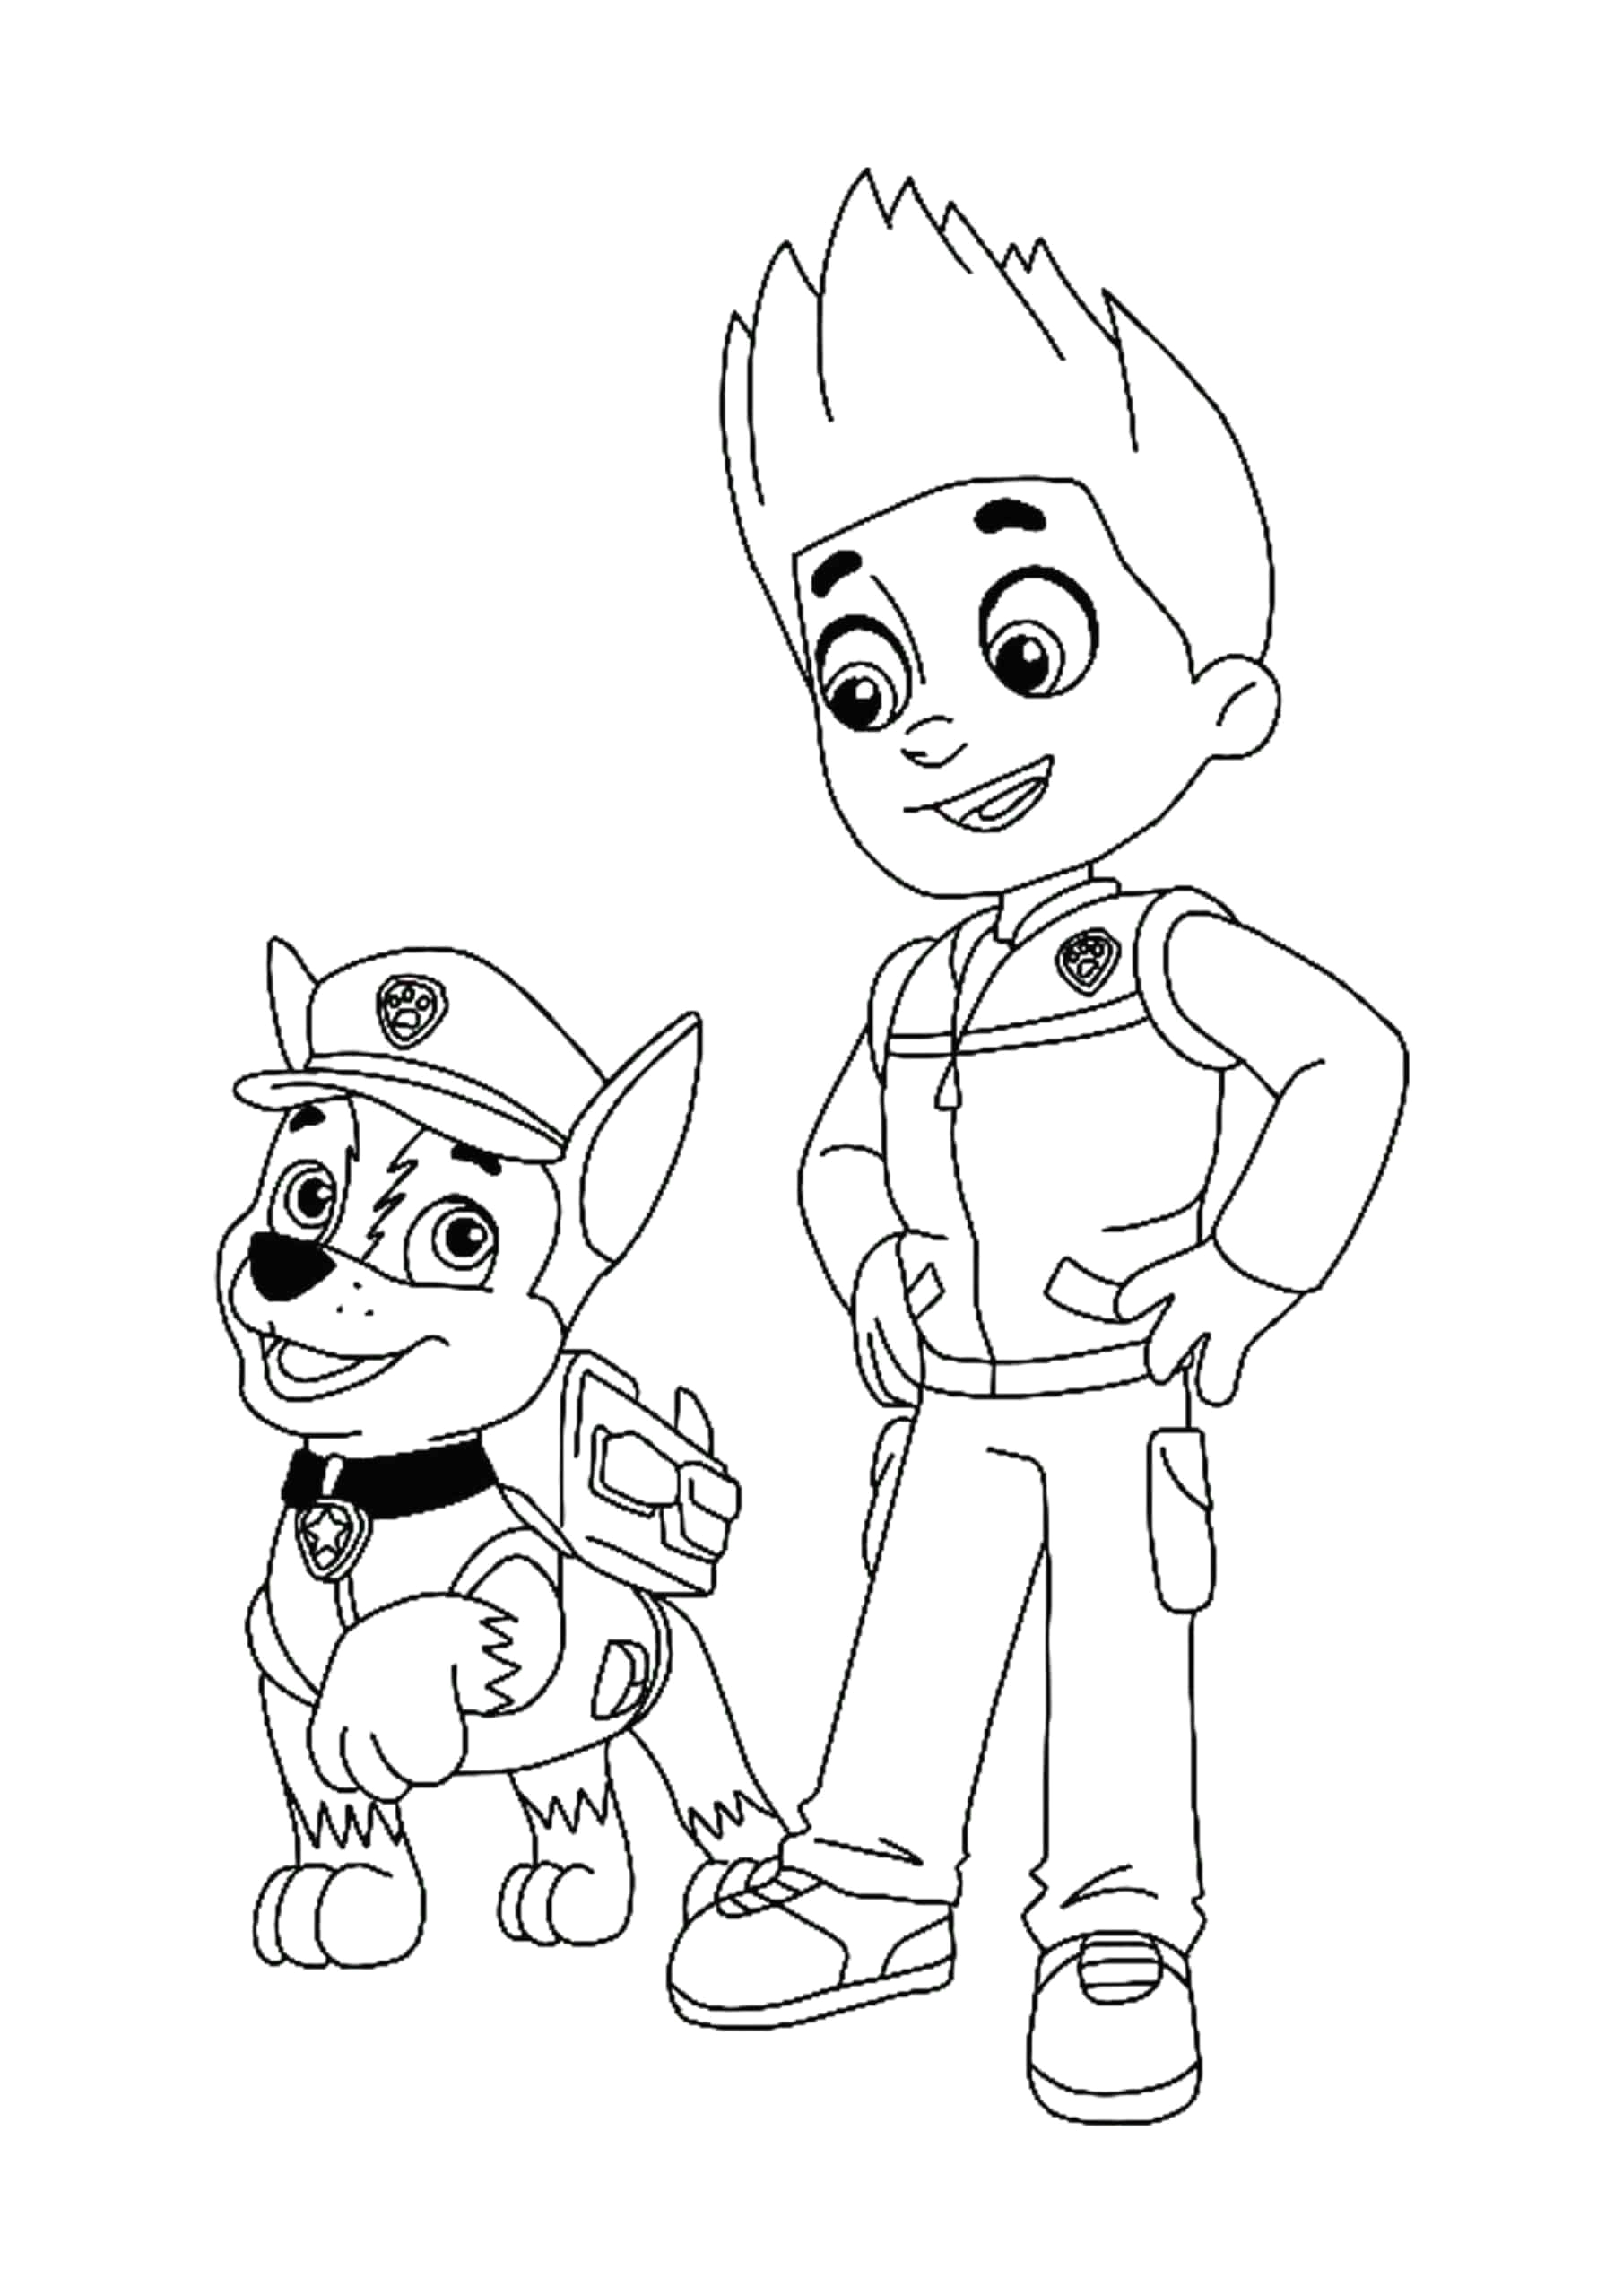 ryder paw patrol coloring pages